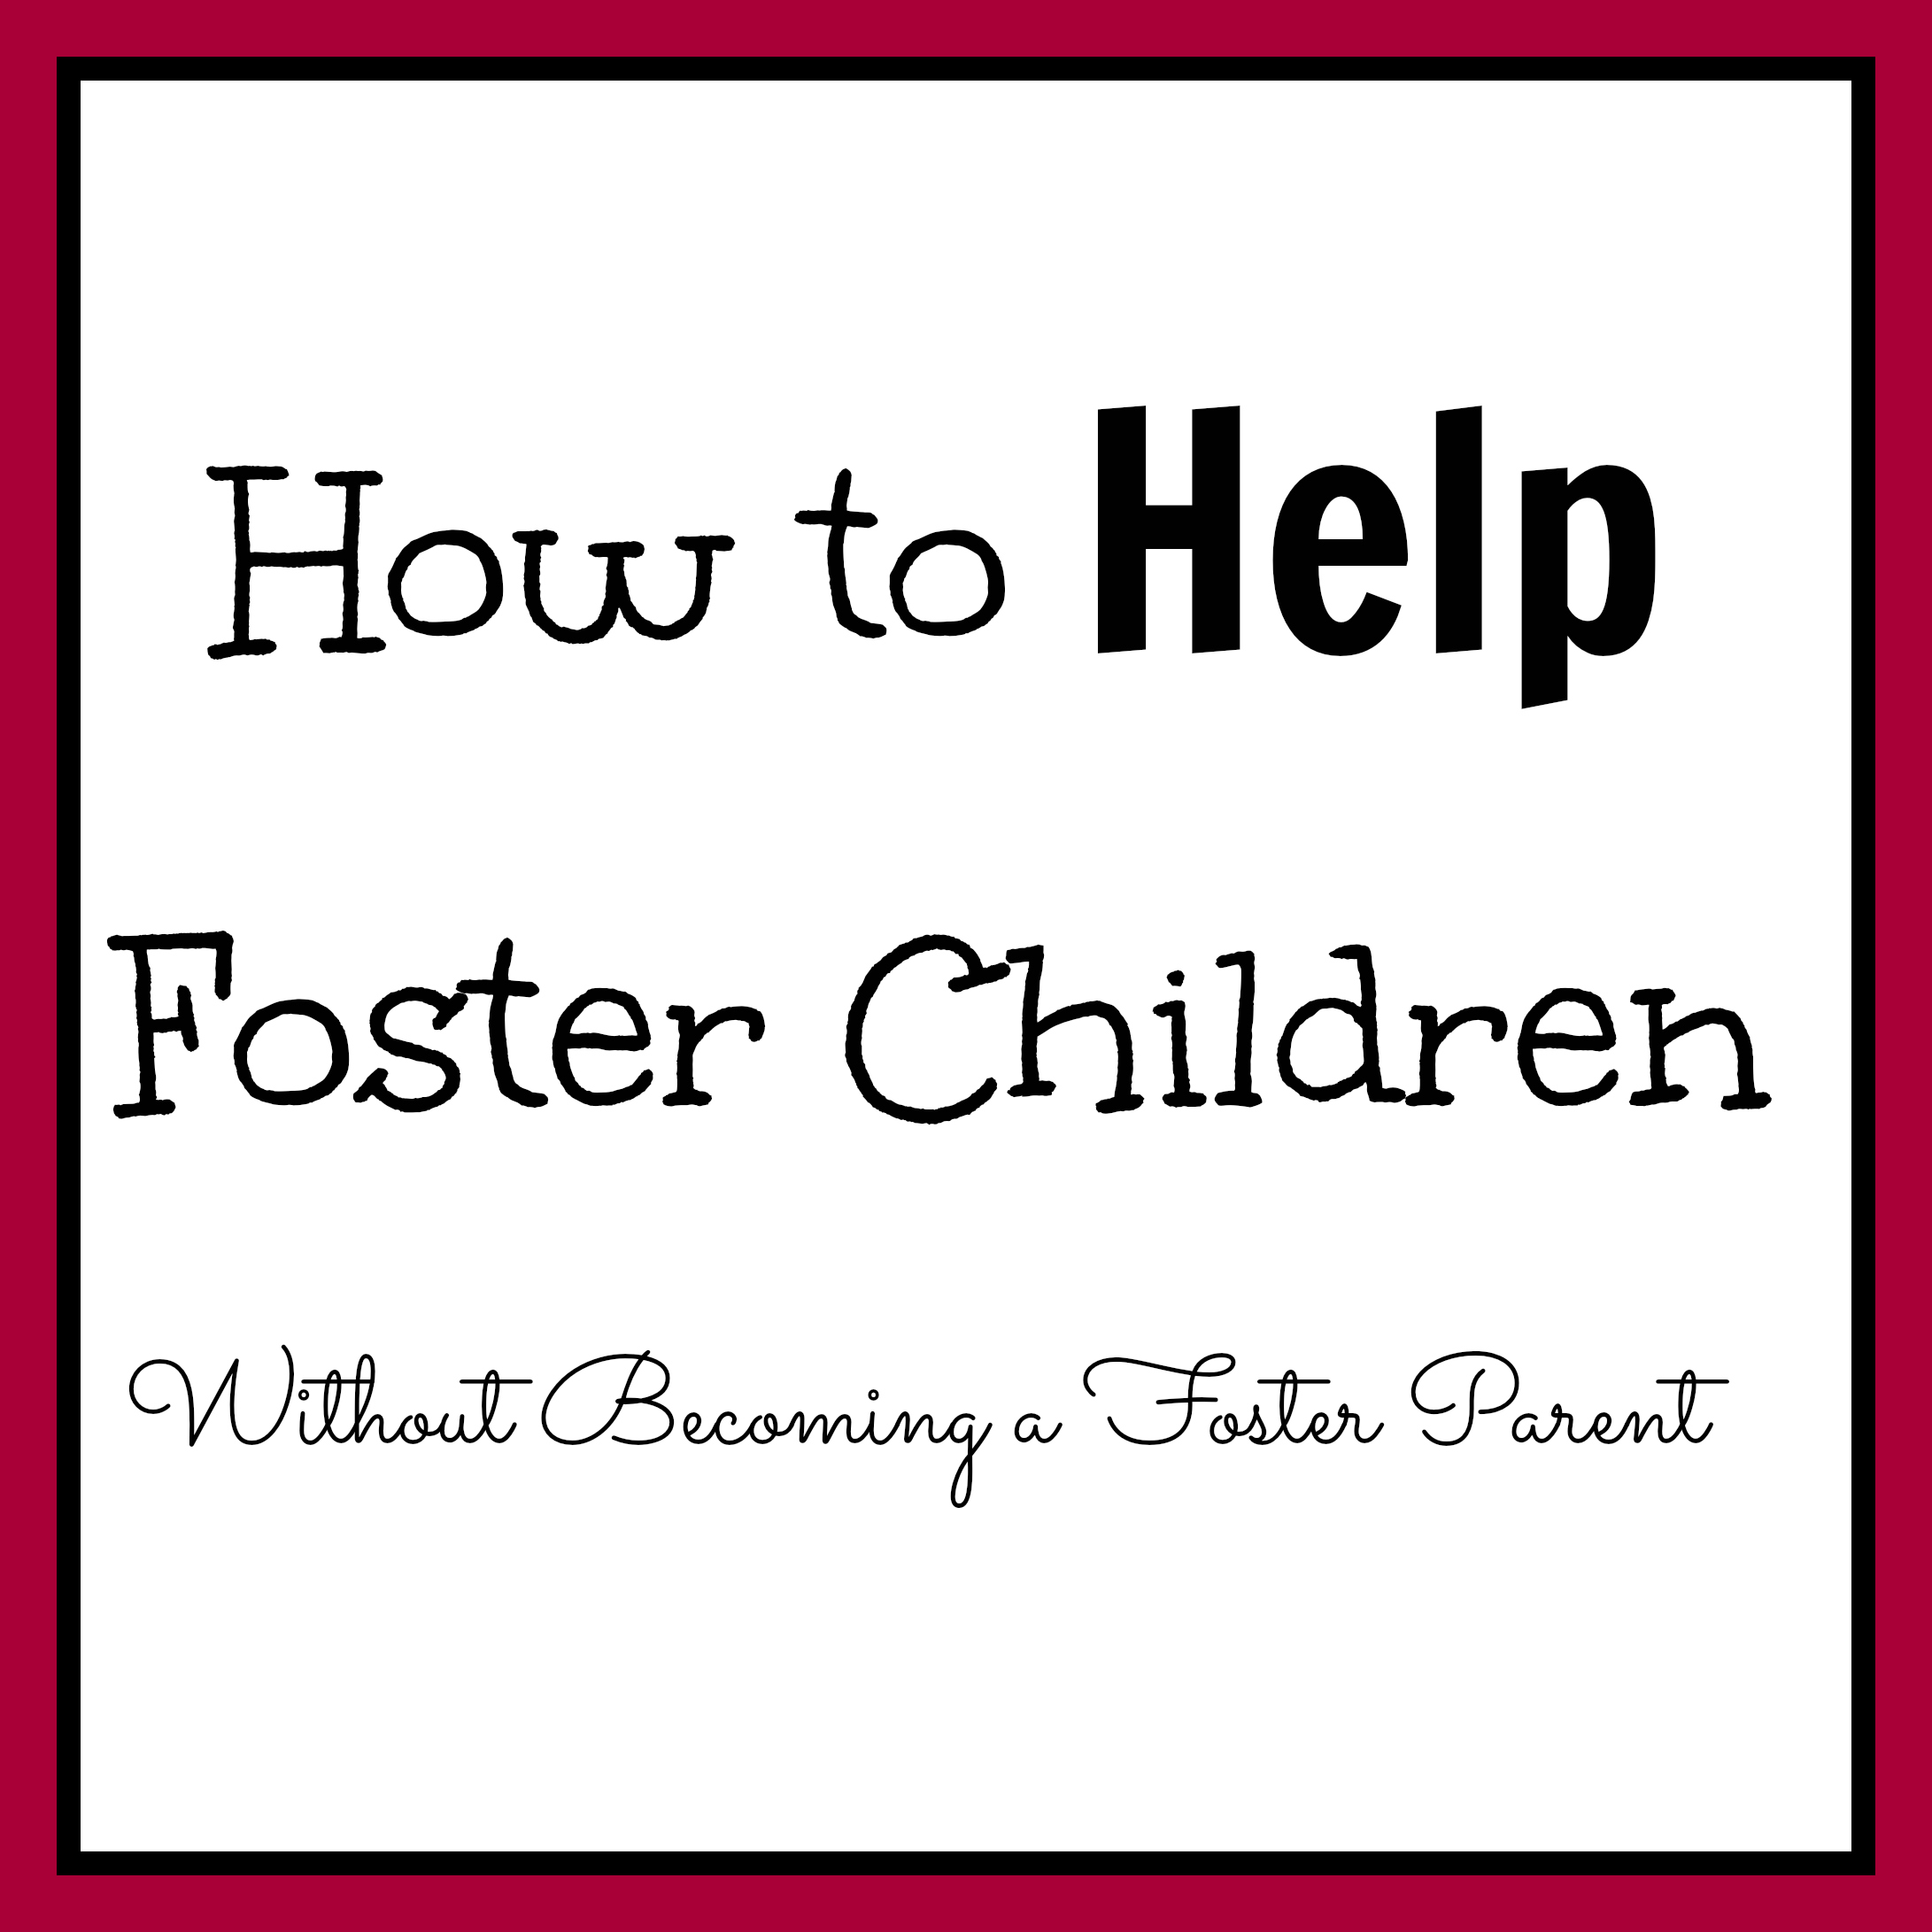 How You can Help Foster Children